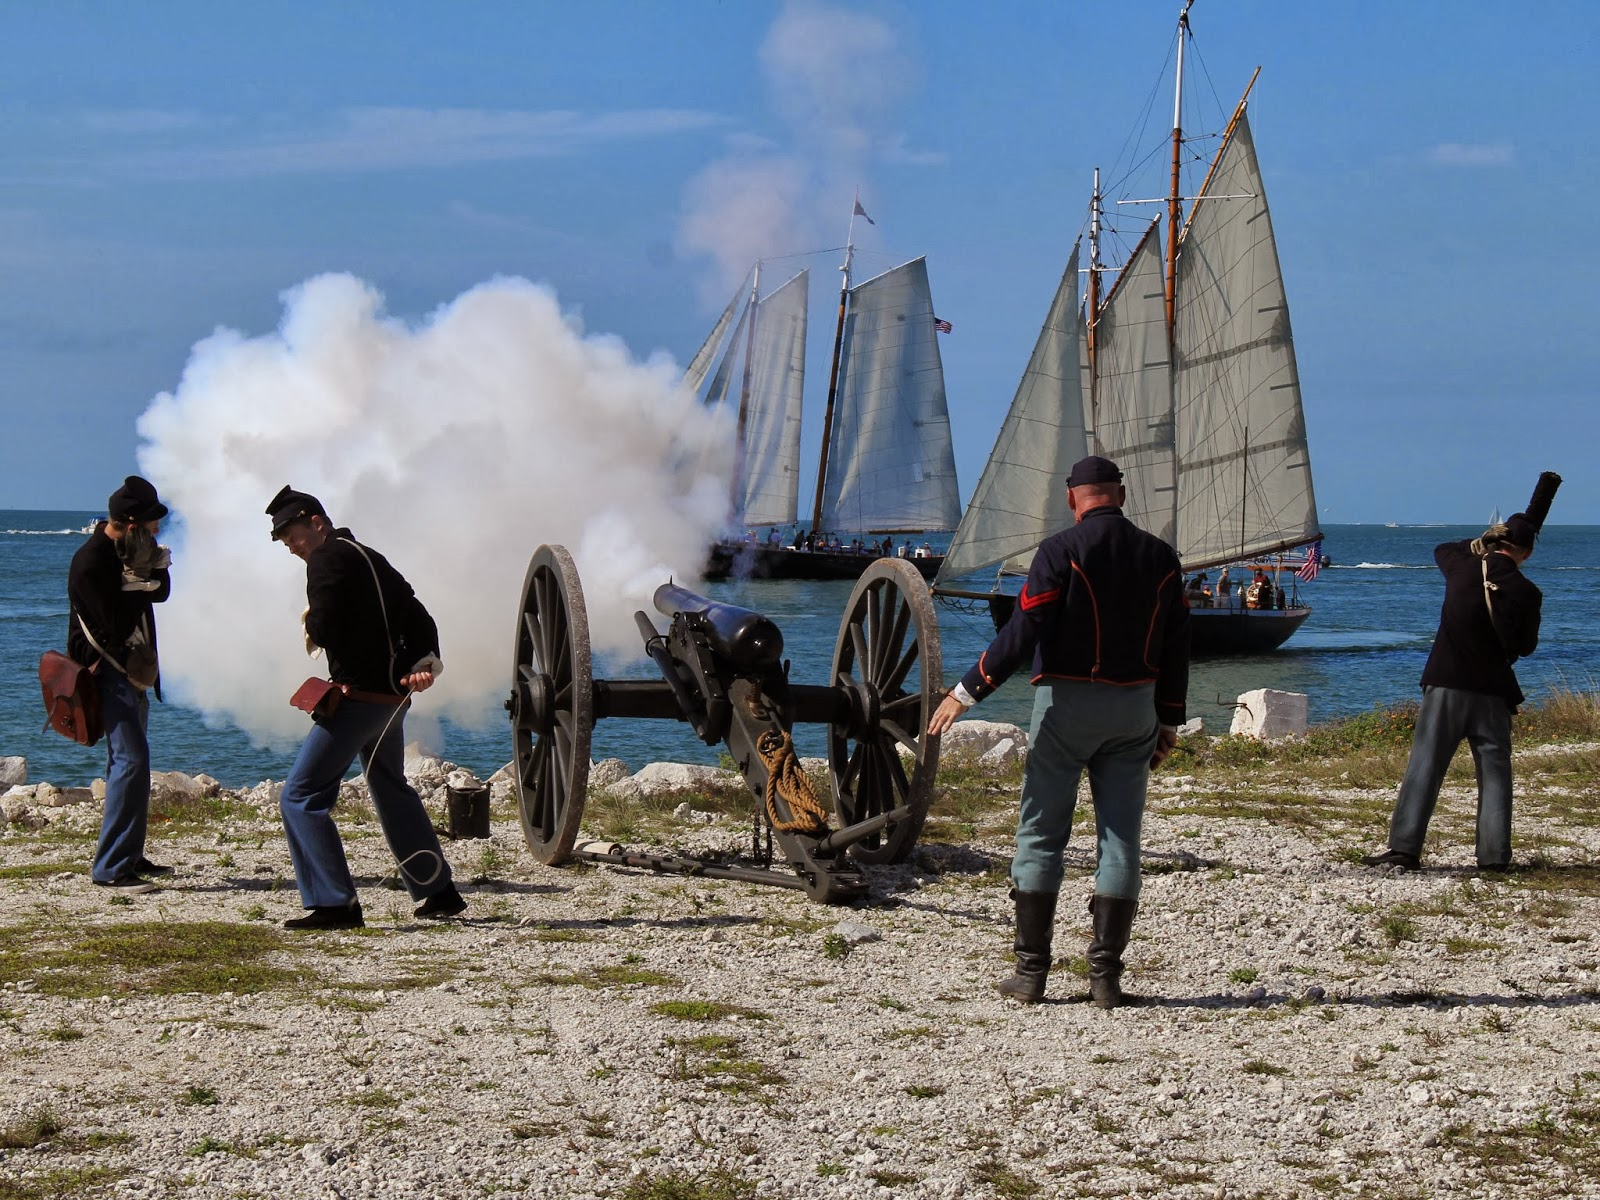 The sea battle at the 28th annual civil war heritage days in fort